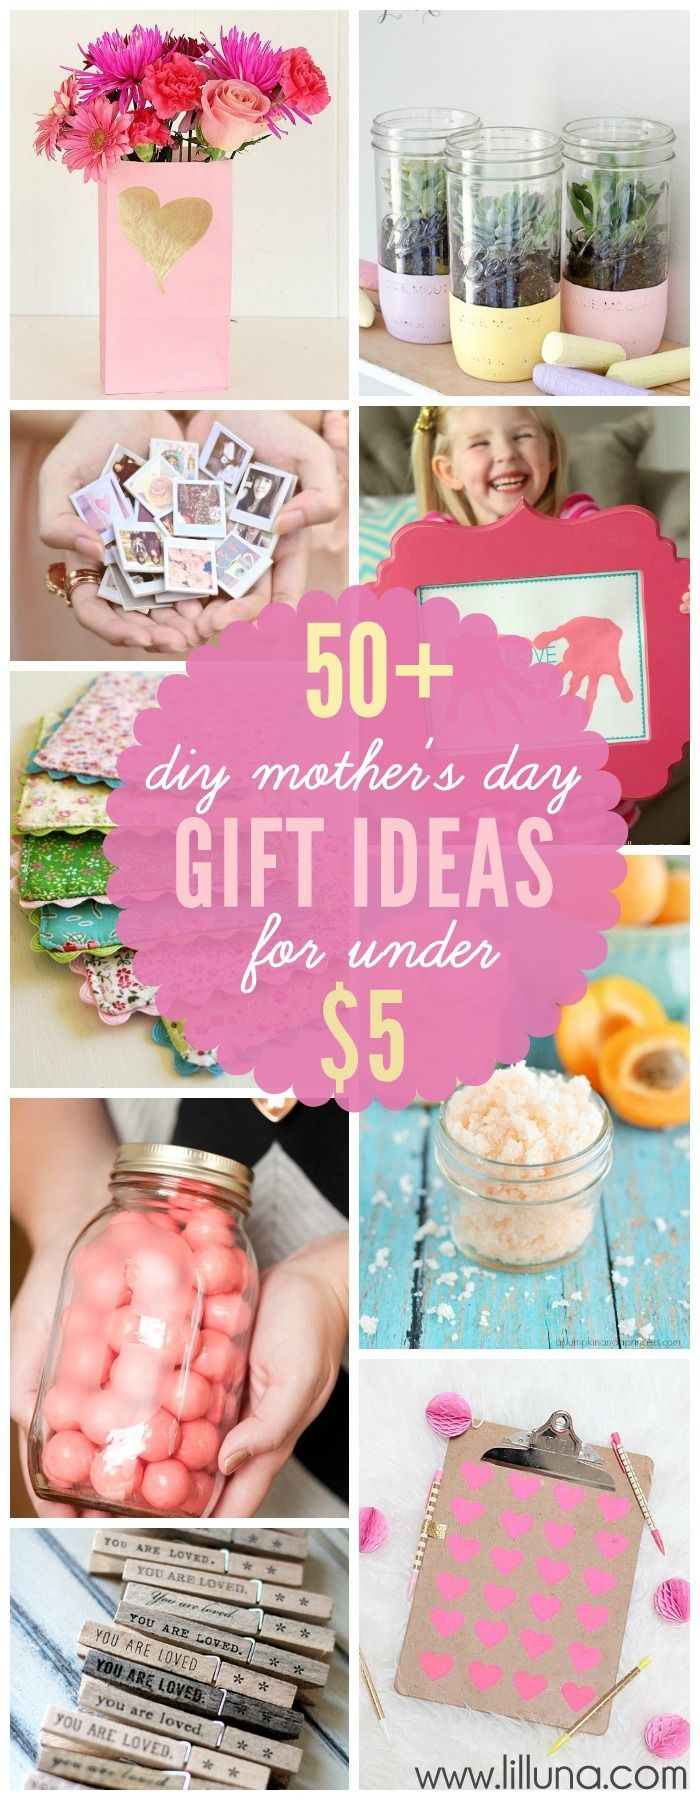 50 Diy Mother 39 S Day Gift Ideas Made For Under 5